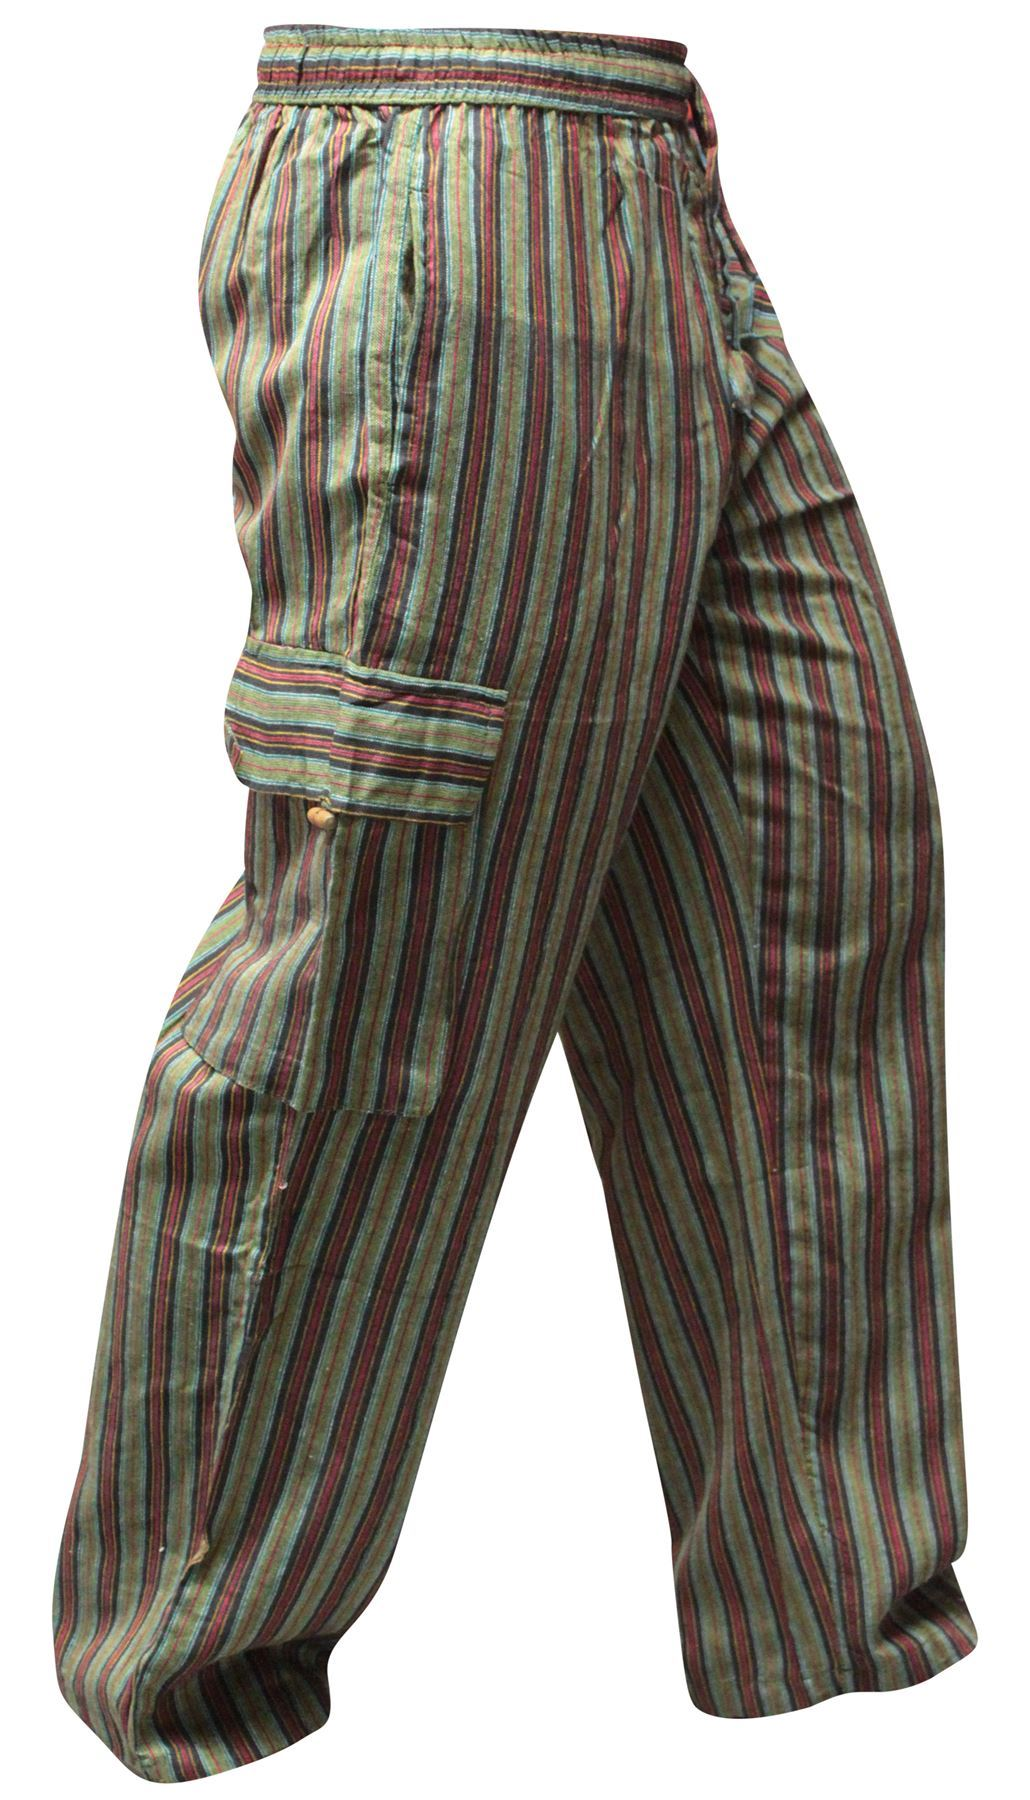 70s Hippie Pants Striped Vintage Bell Bottoms Brown by ... |Hippie Striped Pants